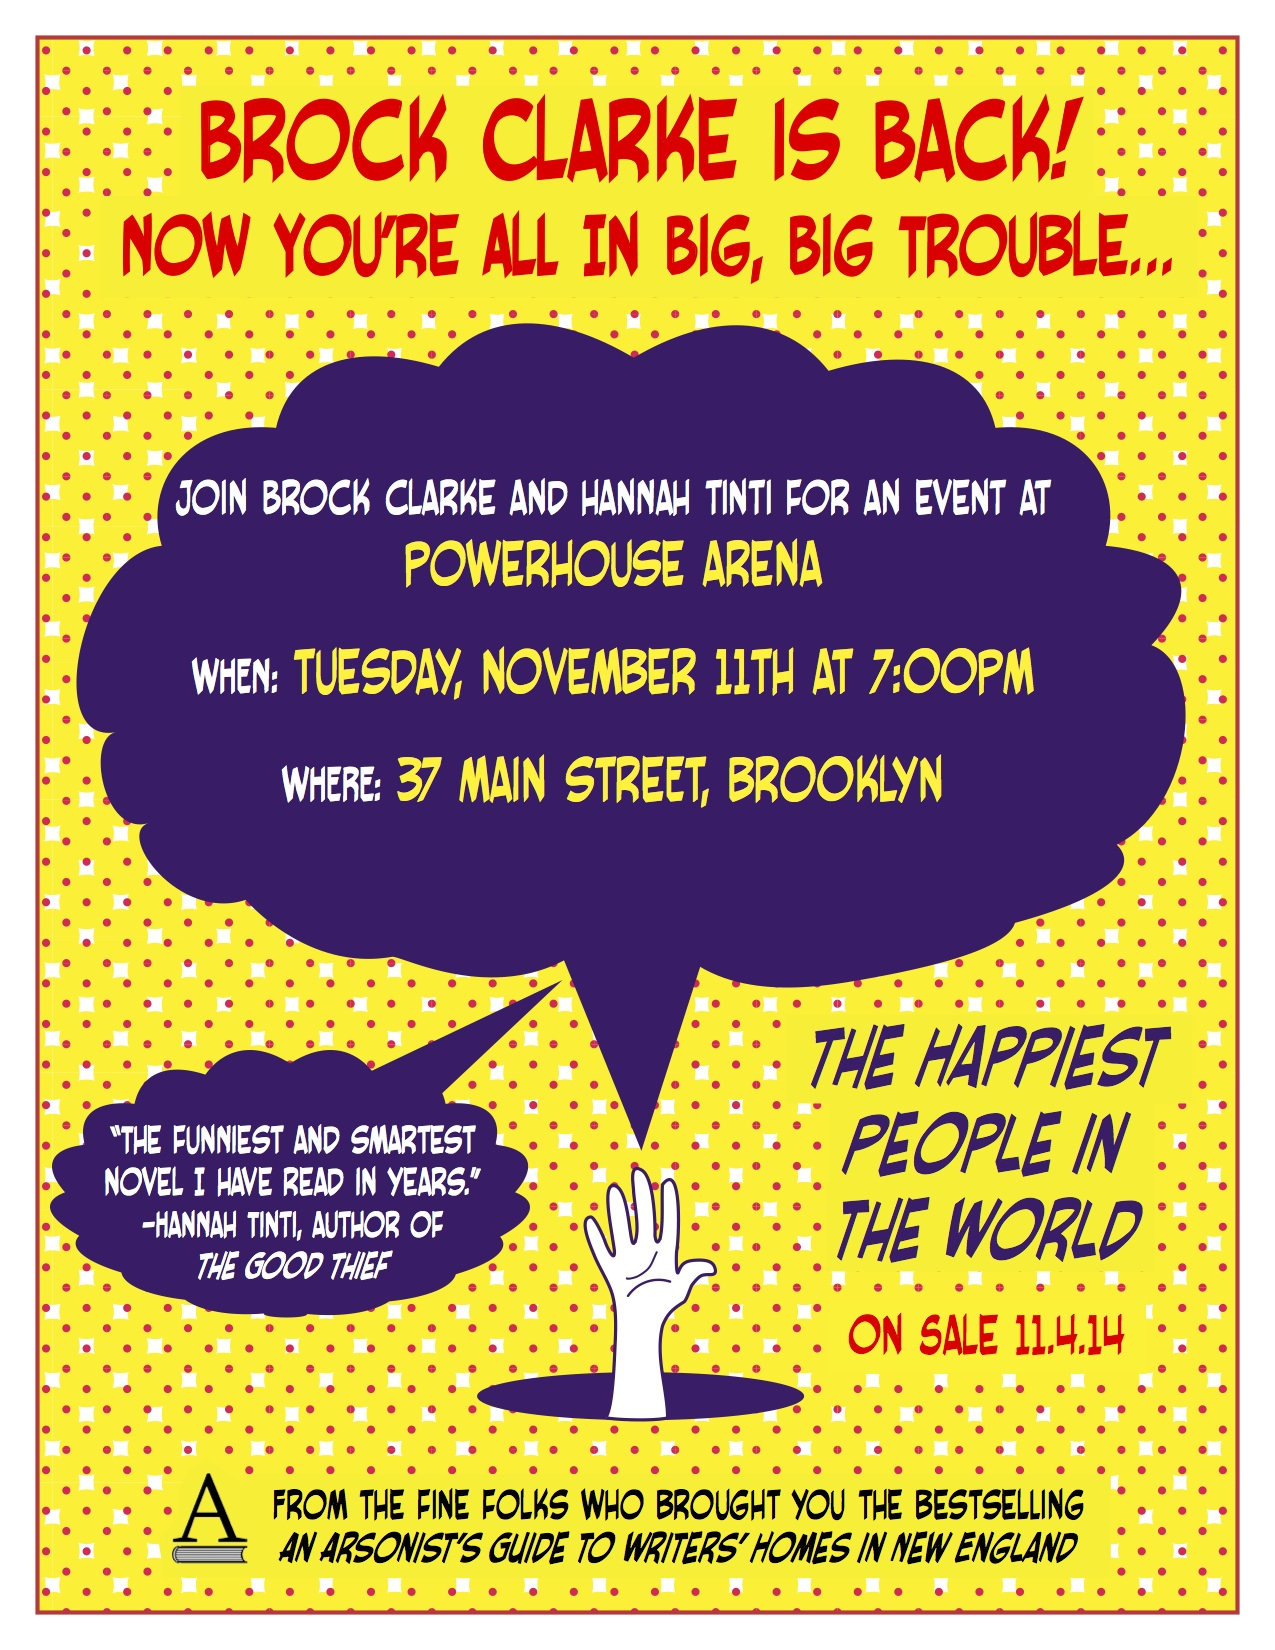 NYC Launch: The Happiest People in the World by Brock Clarke, with Hannah Tinti